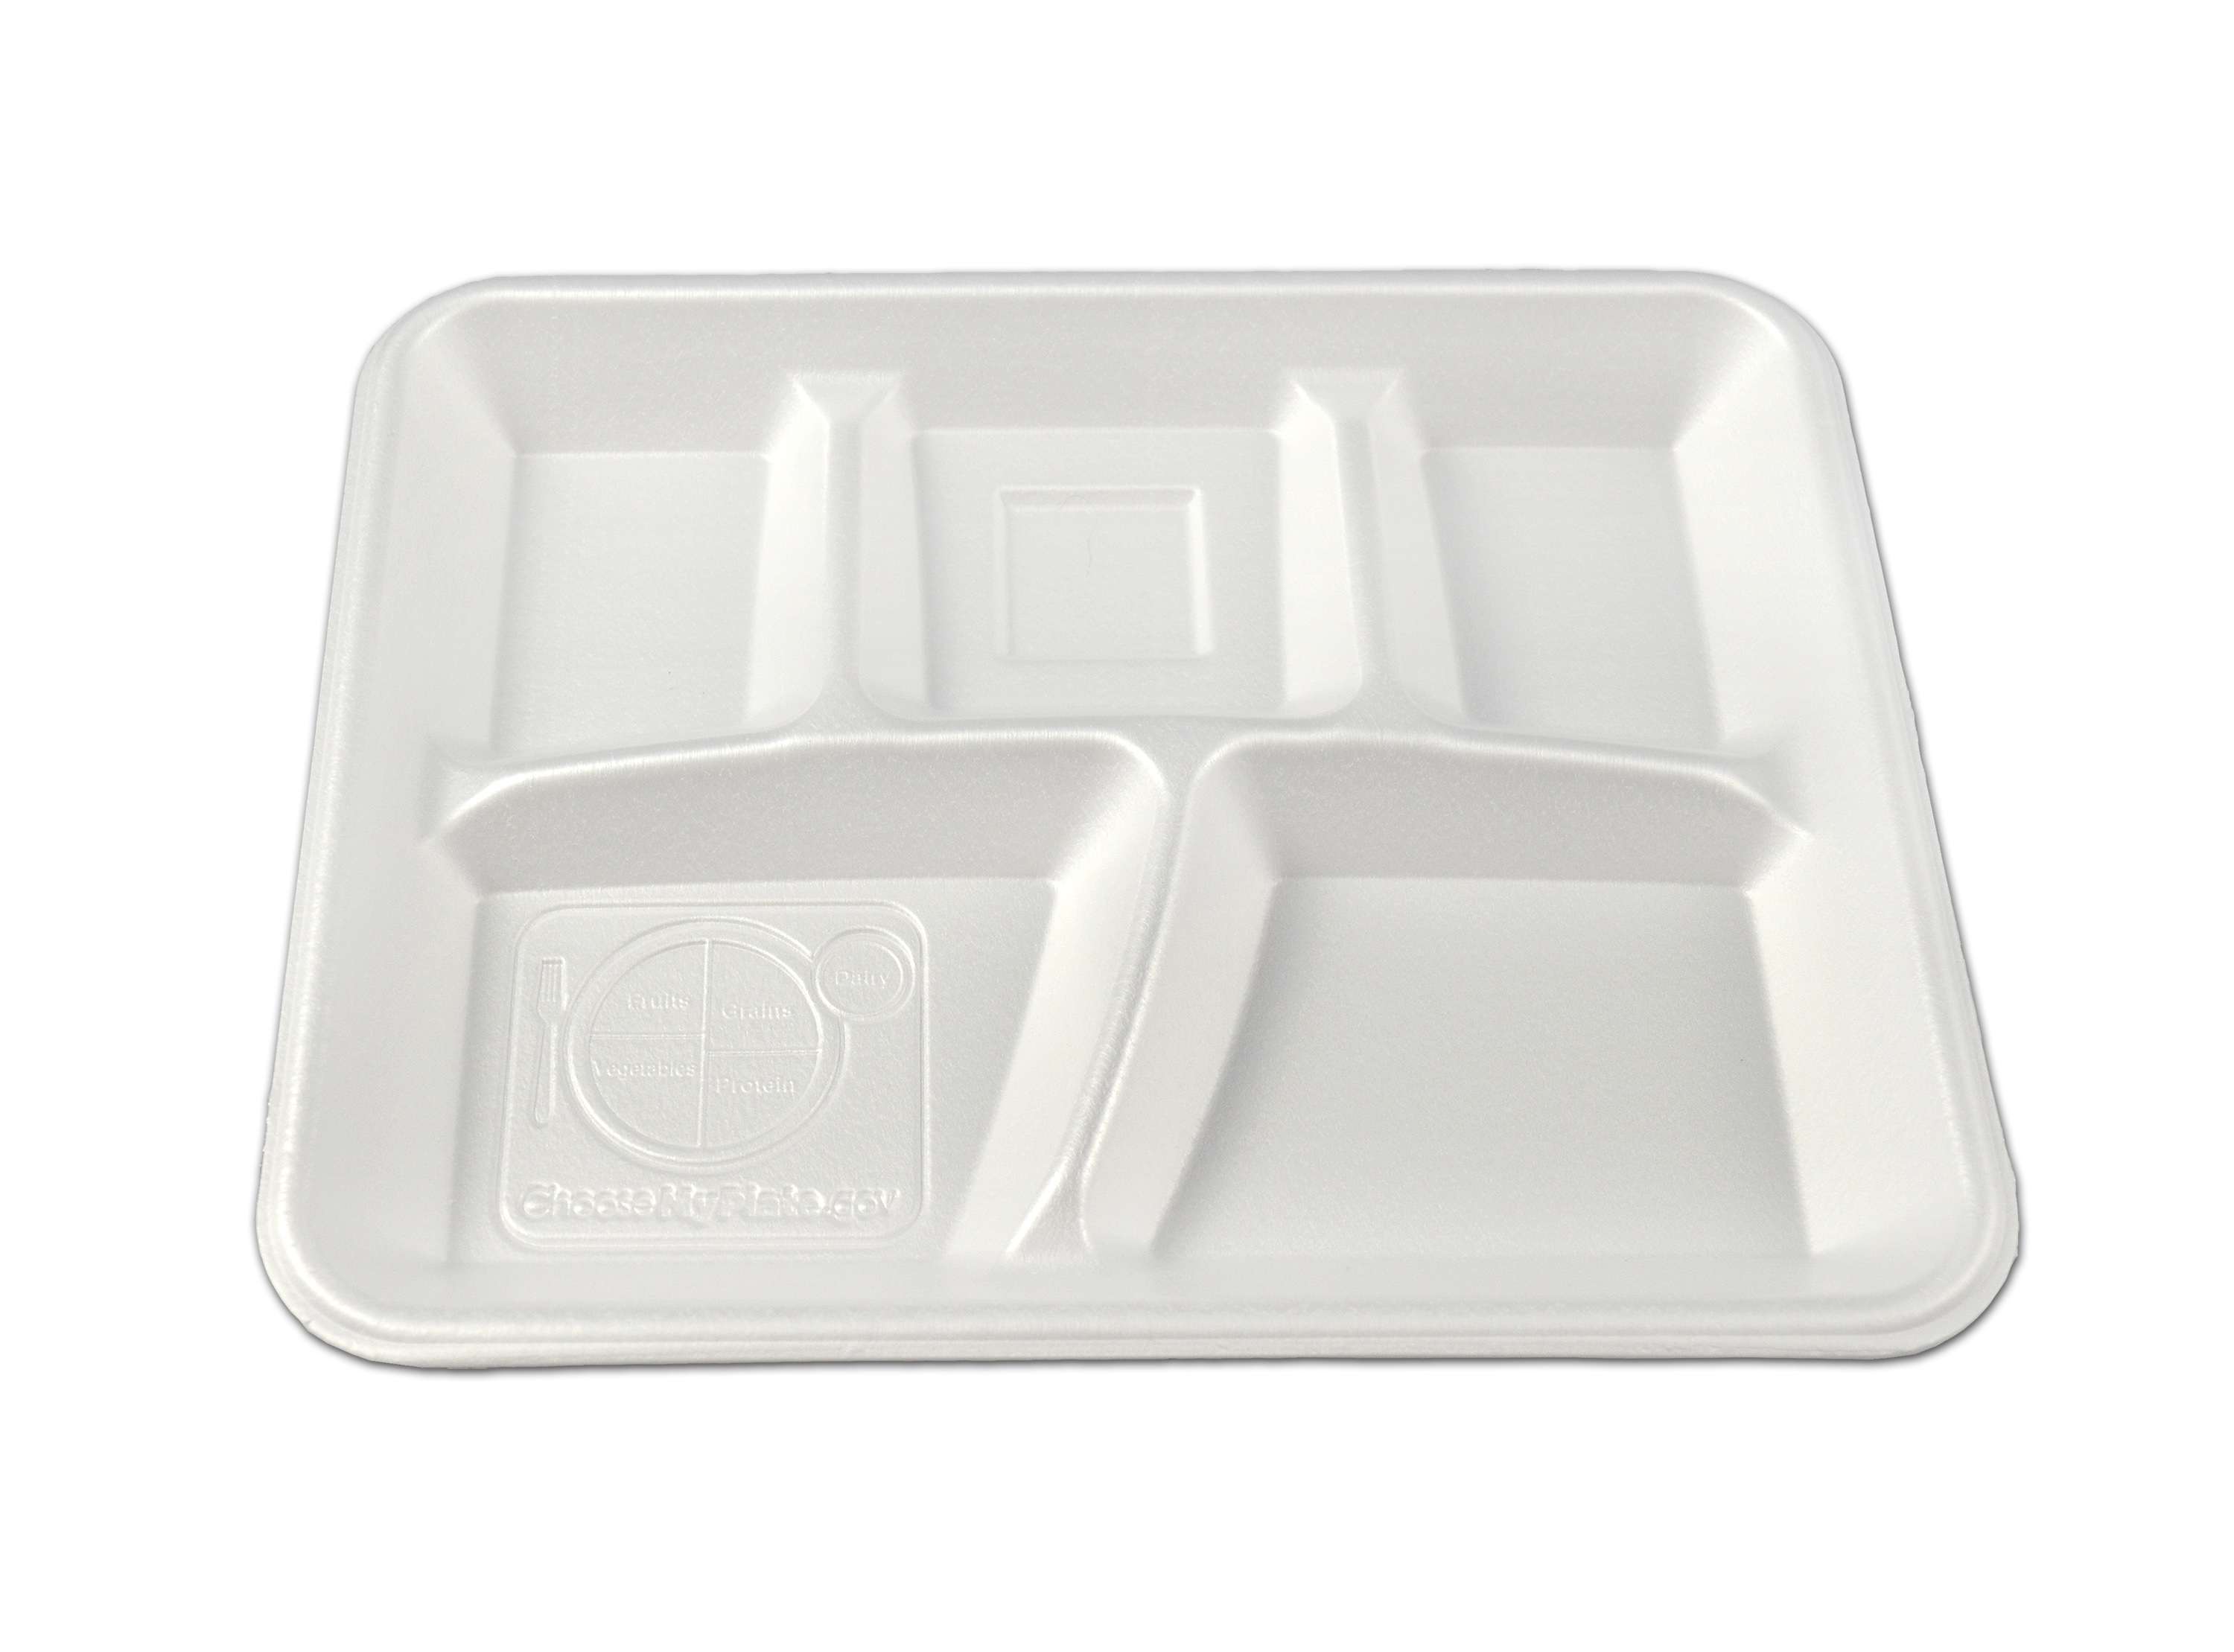 - PAPER u0026 DISPOSABLES | SCHOOL LUNCH TRAYS | 5-COMPARTMENT |  sc 1 st  Gulf Coast Paper & PAPER u0026 DISPOSABLES | SCHOOL LUNCH TRAYS | 5-COMPARTMENT |